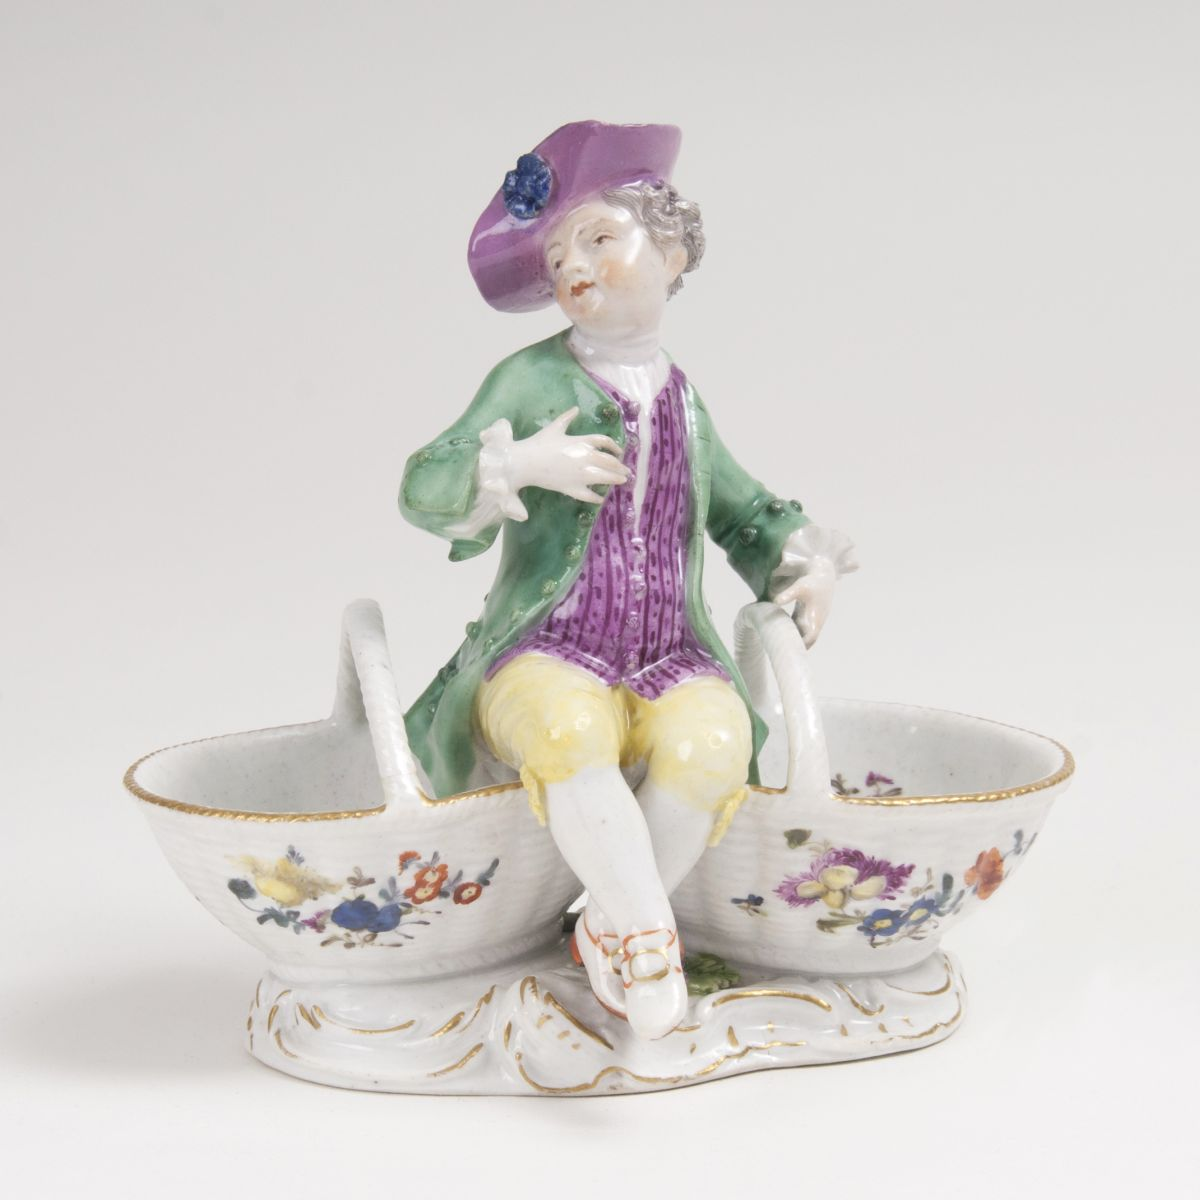 A Condiment Bowl with Little Gentleman